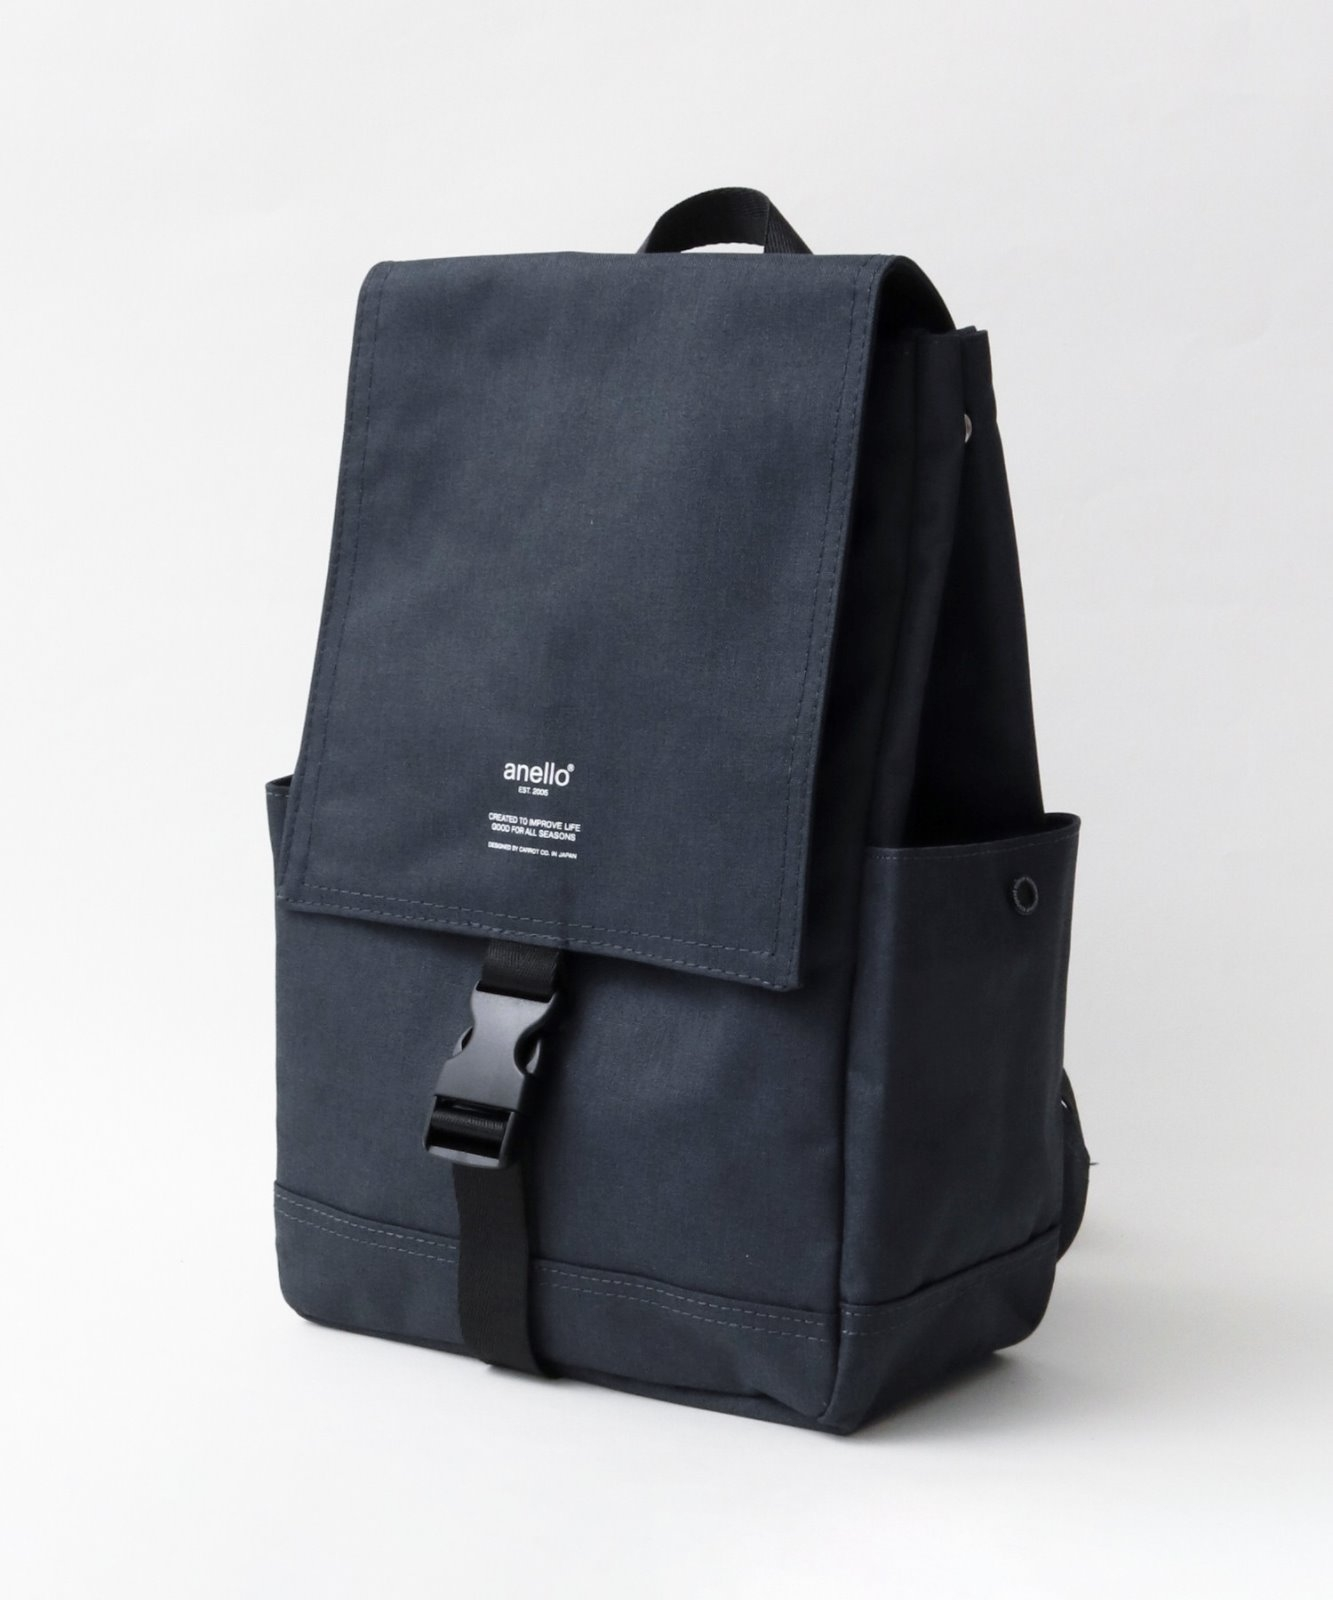 Japan famous brand Anello backpack product # 9-2466279-18-9